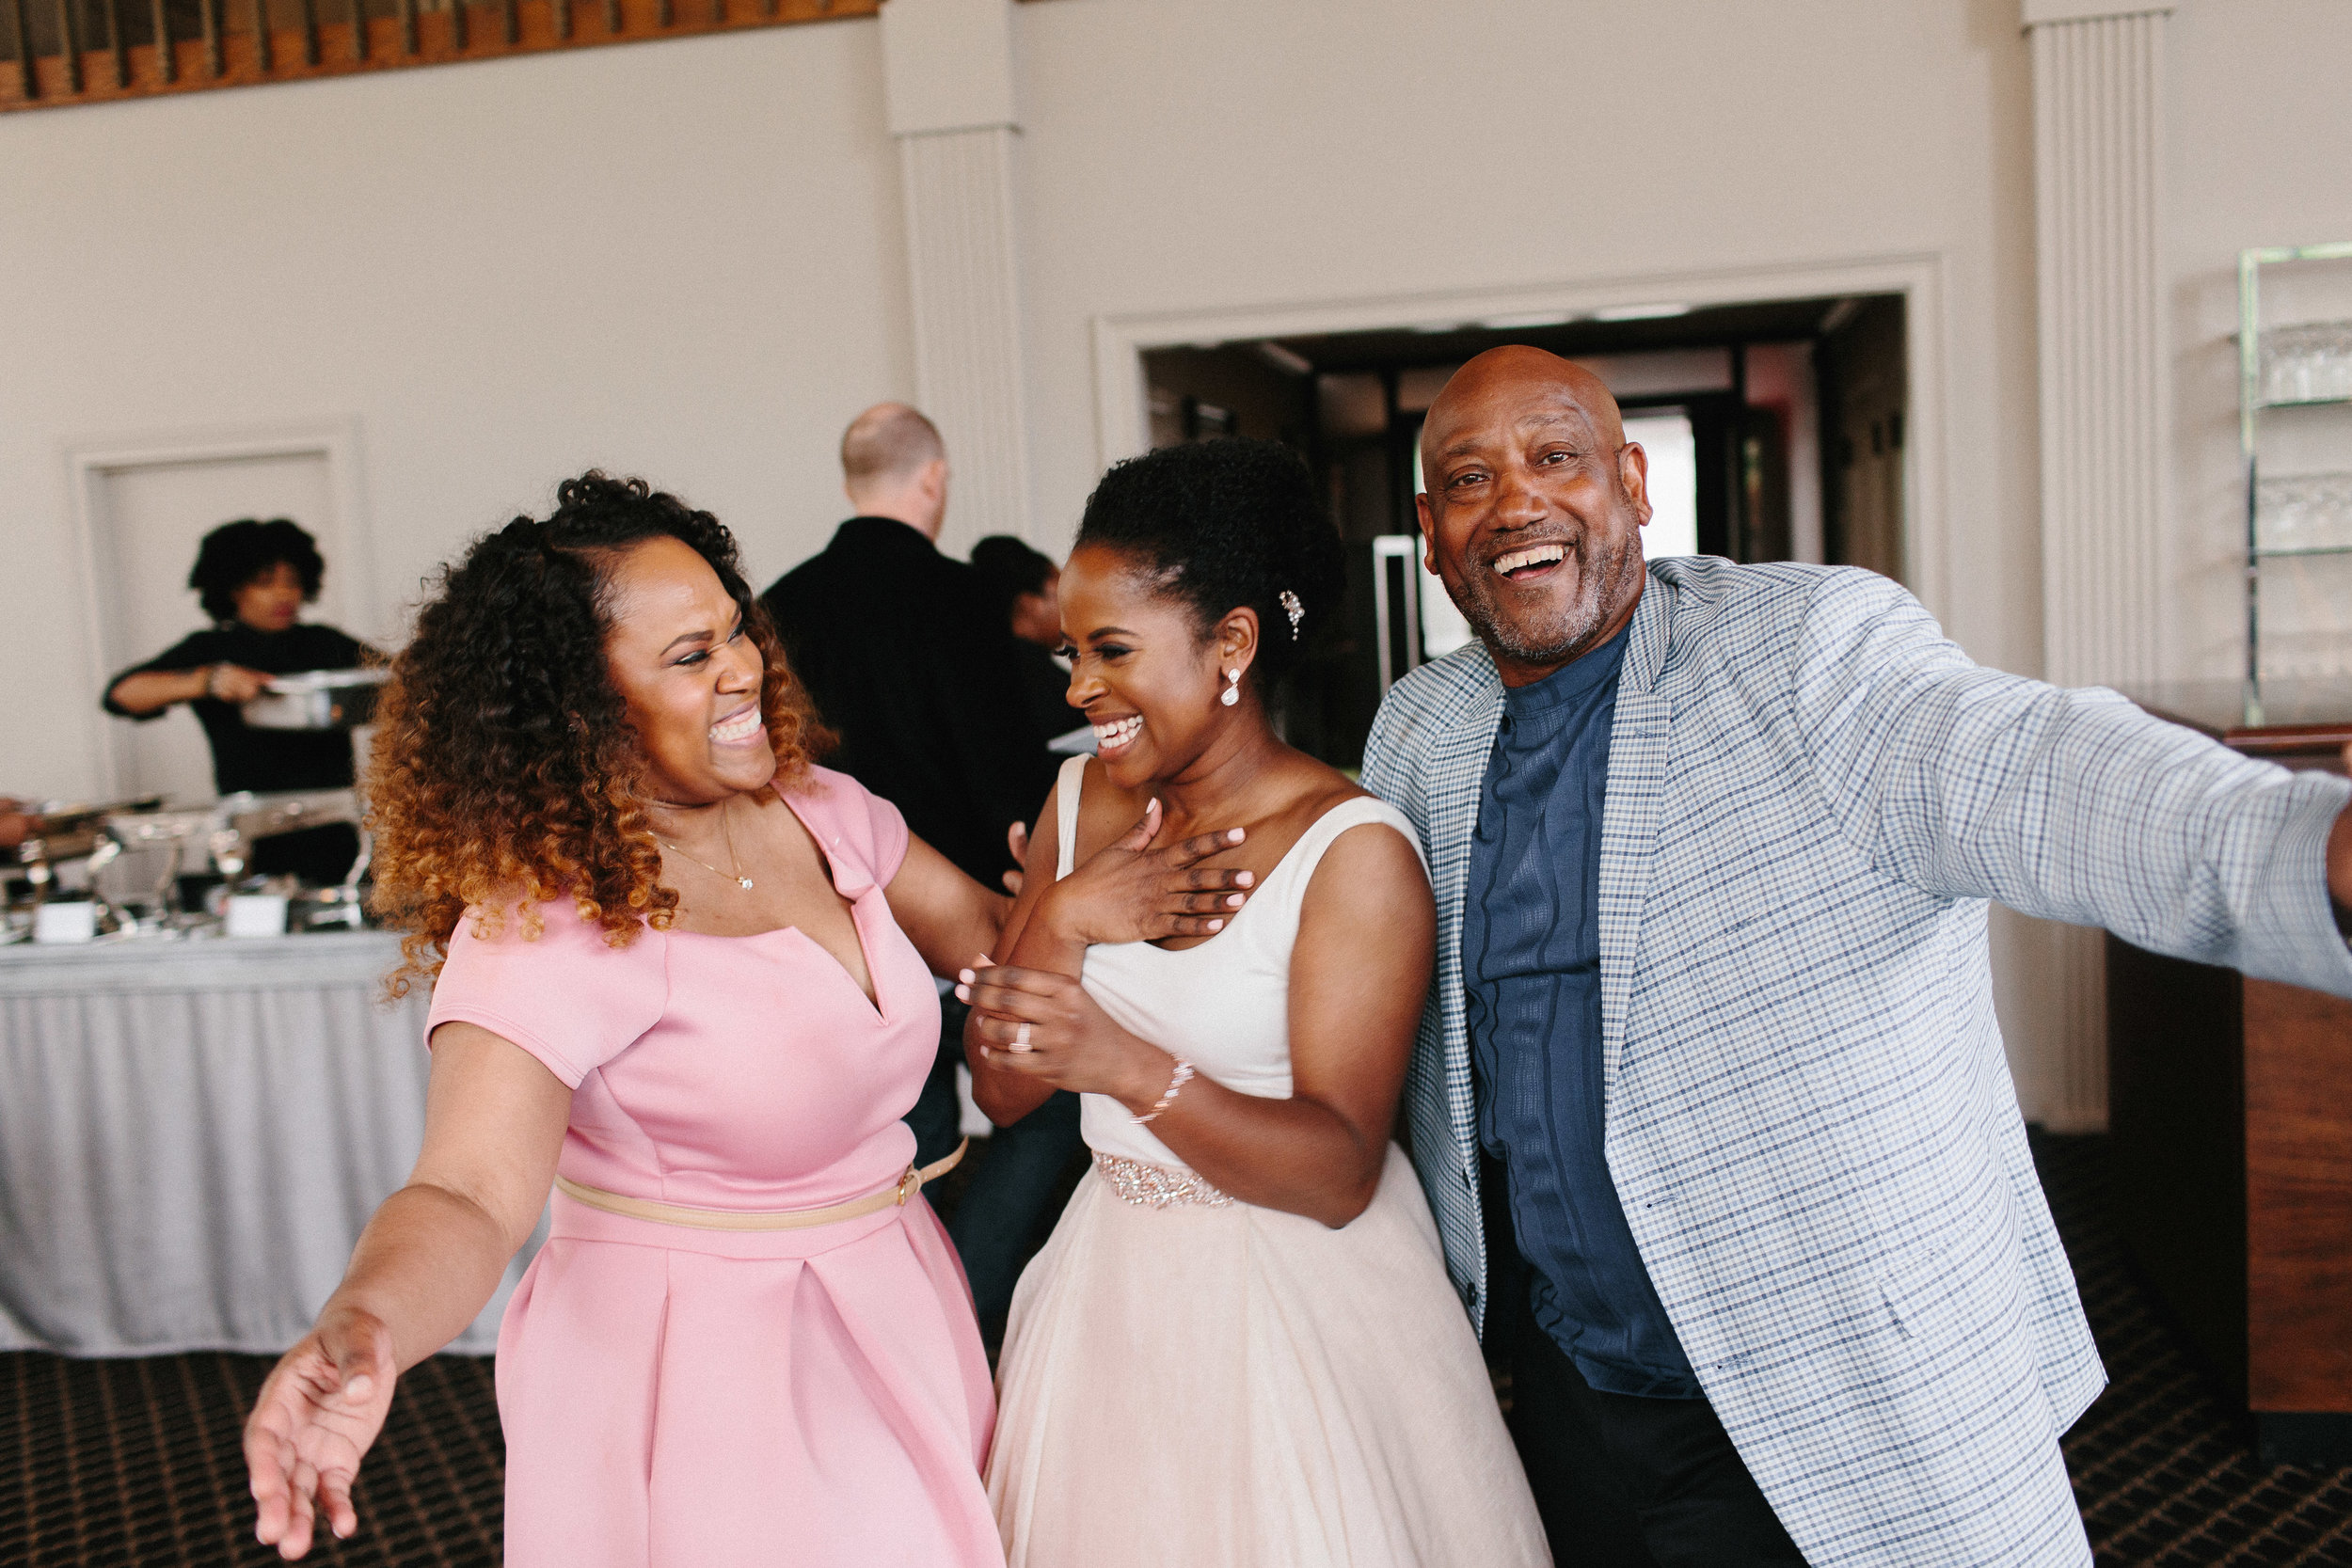 the_atrium_wedding_atlanta_norcross_lifestyle_photographers_lgbtq_1564.jpg